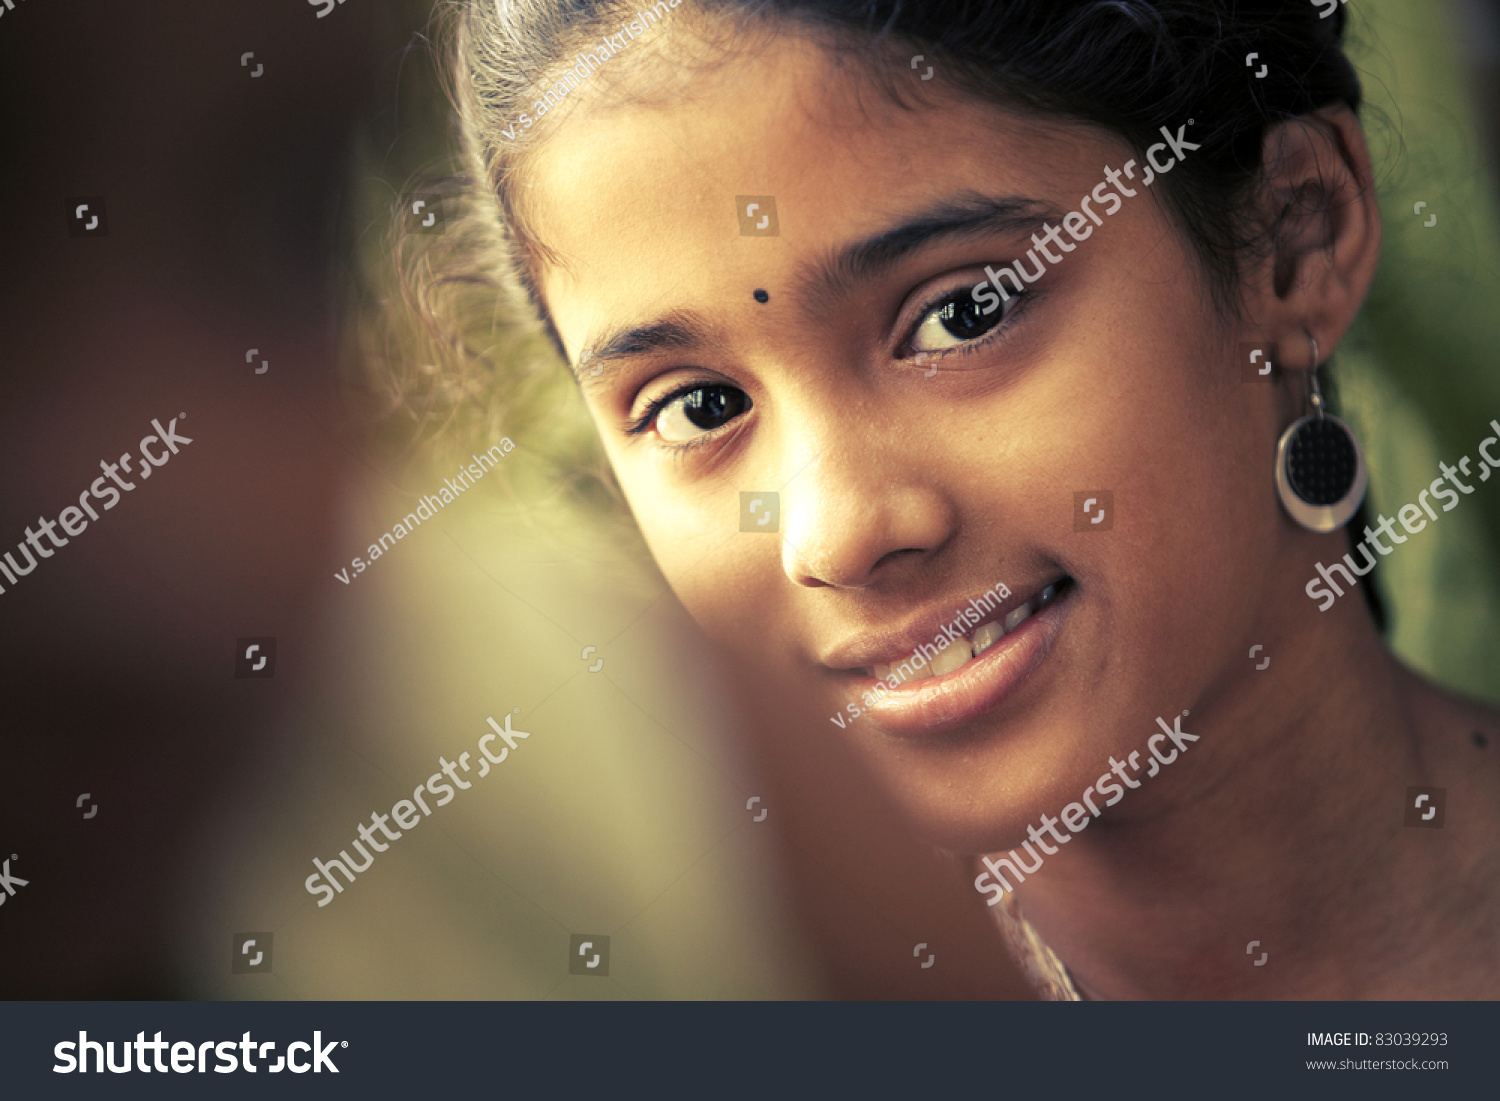 indian beautiful teen girl stock photo & image (royalty-free